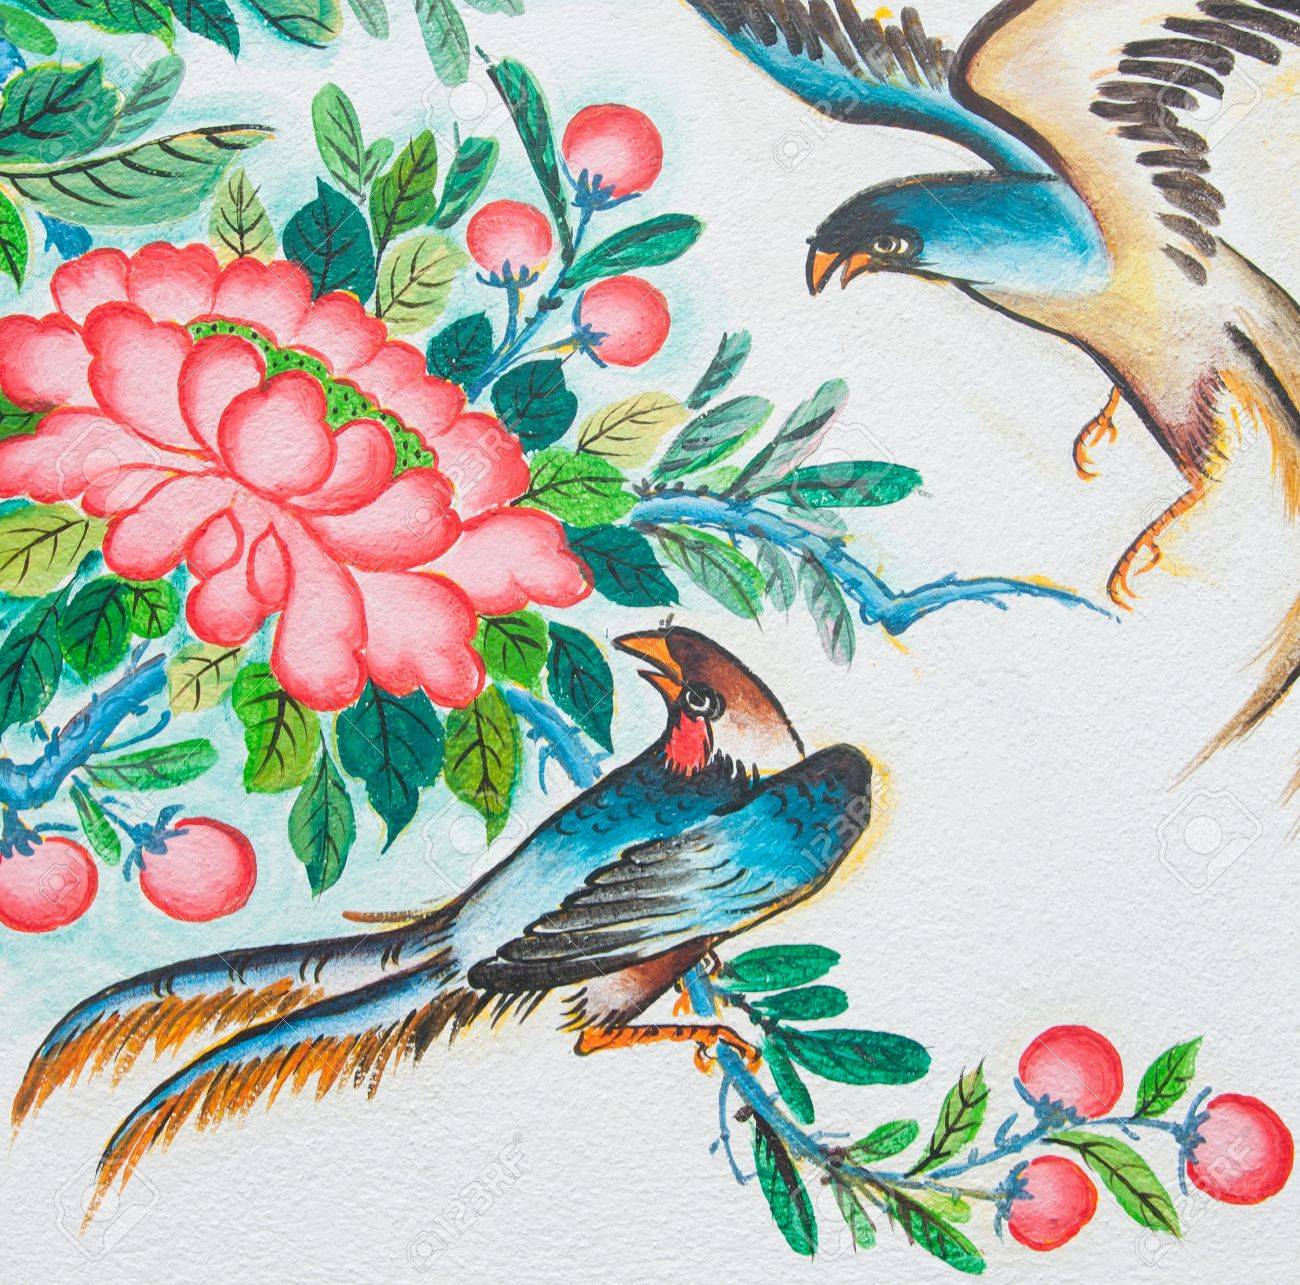 Chinese Birds Painting On Wall In Chinese Temple